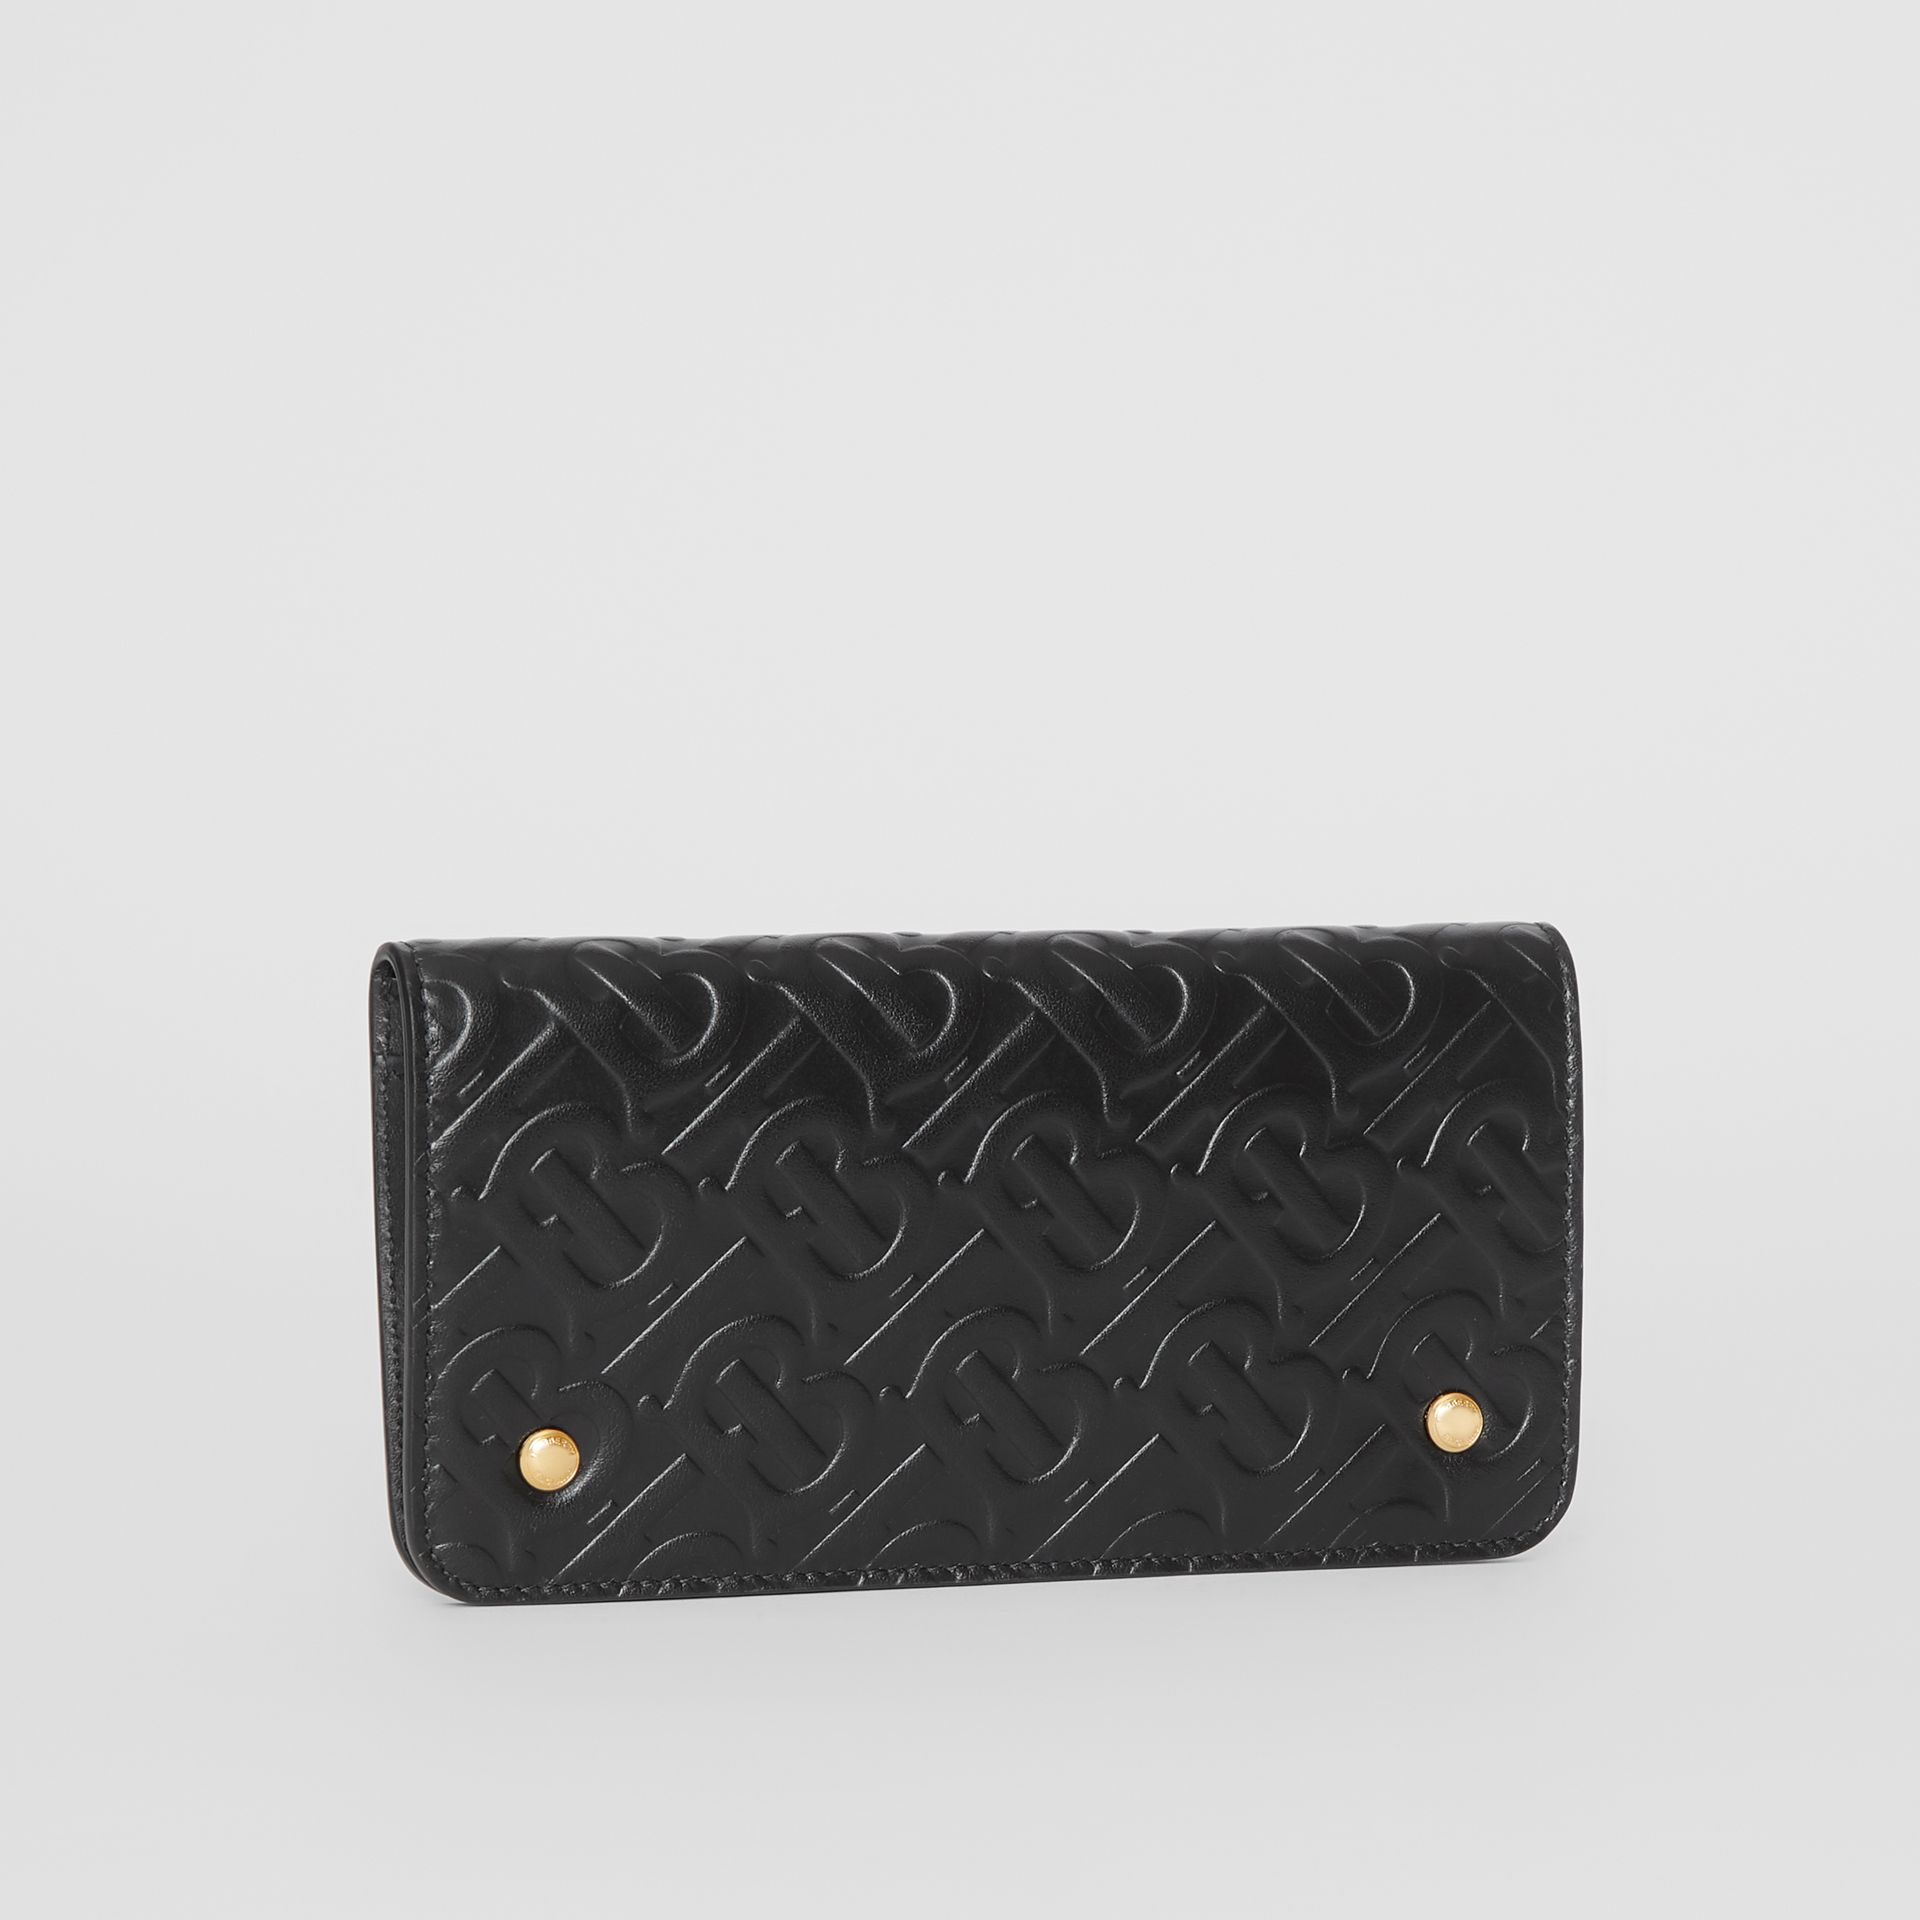 Monogram Leather Phone Wallet in Black - Women | Burberry - gallery image 3